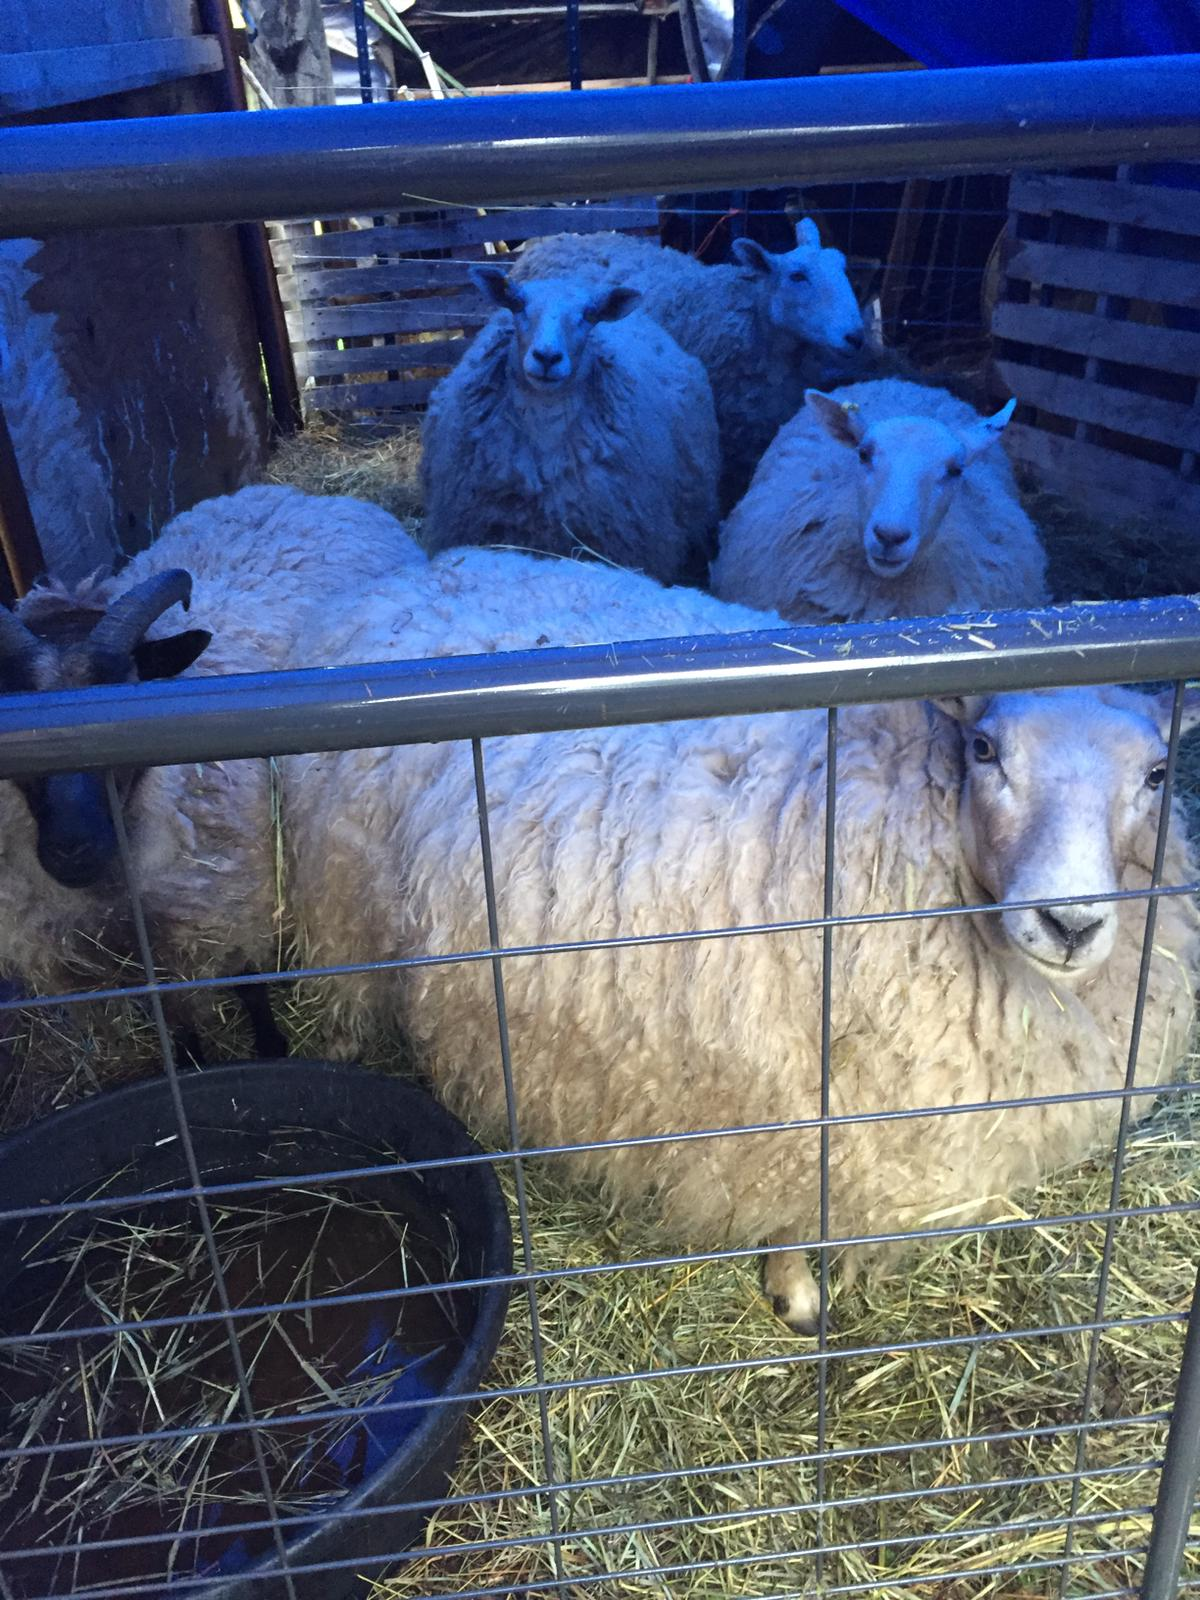 Five sheep in a makeshift pen, with a blue hue from light coming through a tarp.